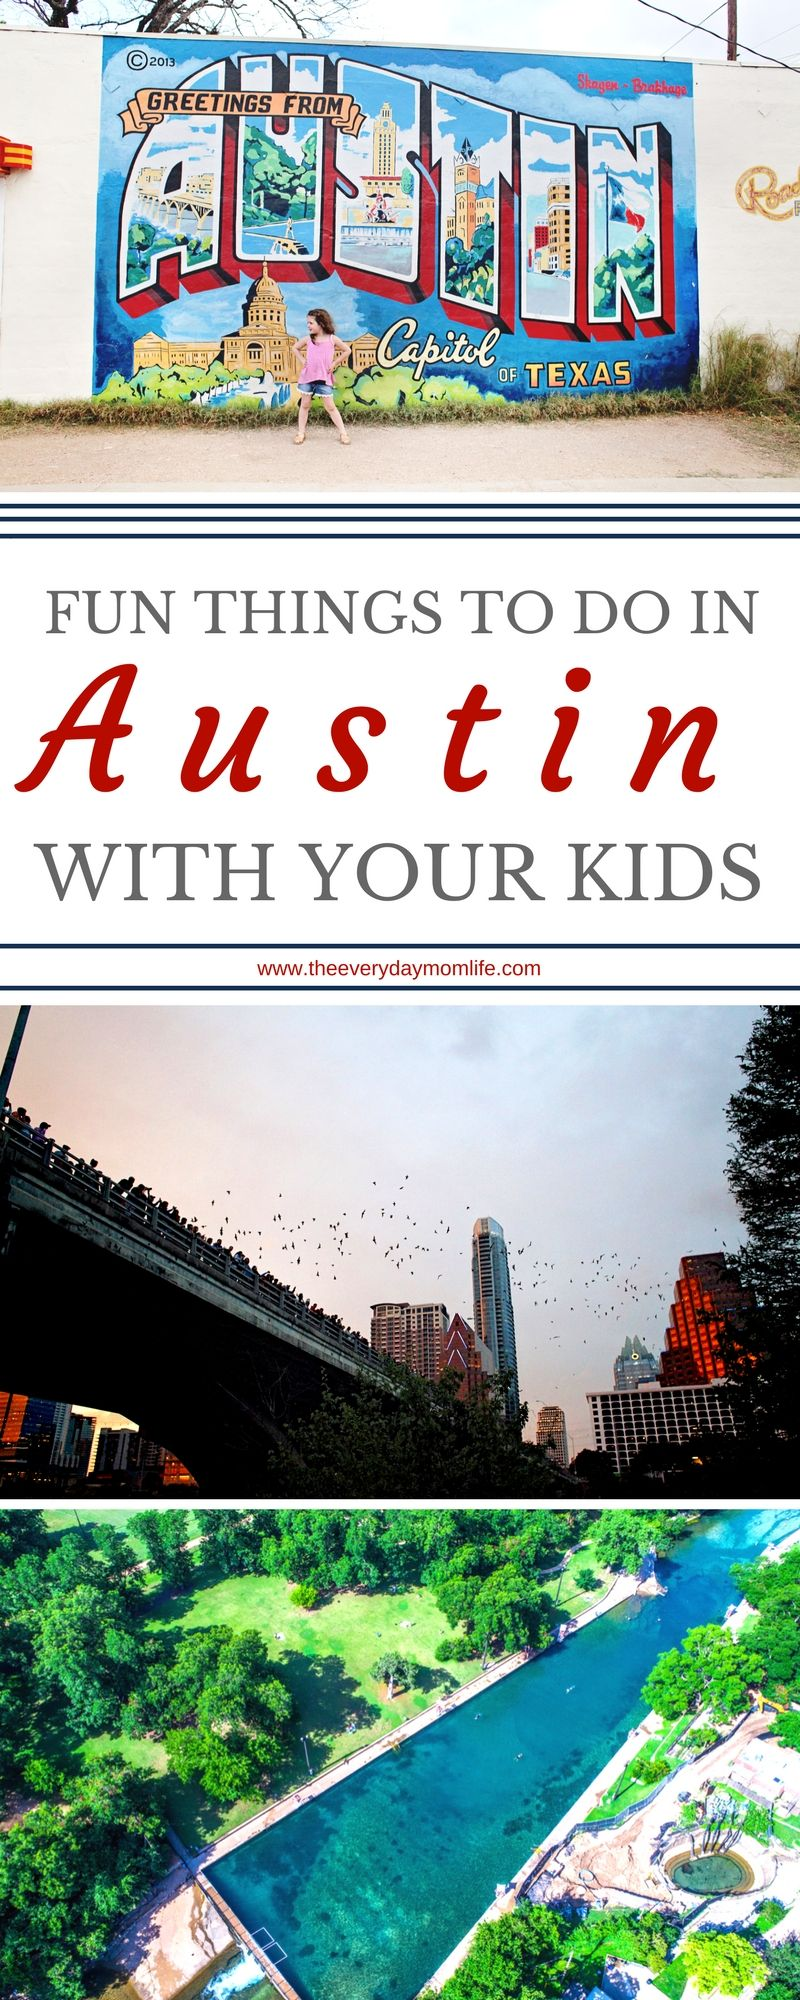 10 things to do in austin with kids austin with kids